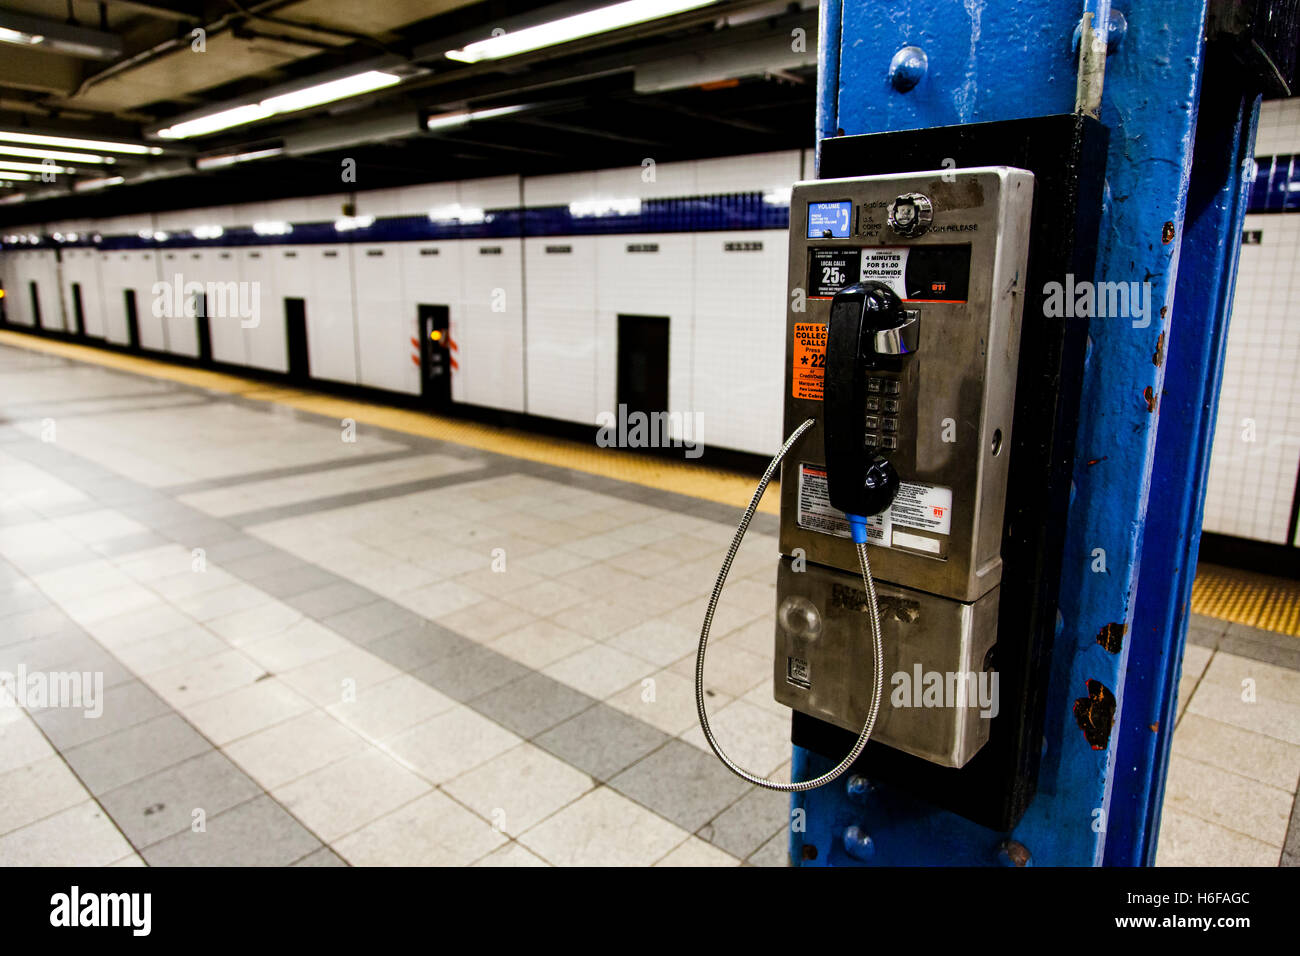 Payphone on the platform of the Canal St. subway station platform in Manhattan. - Stock Image